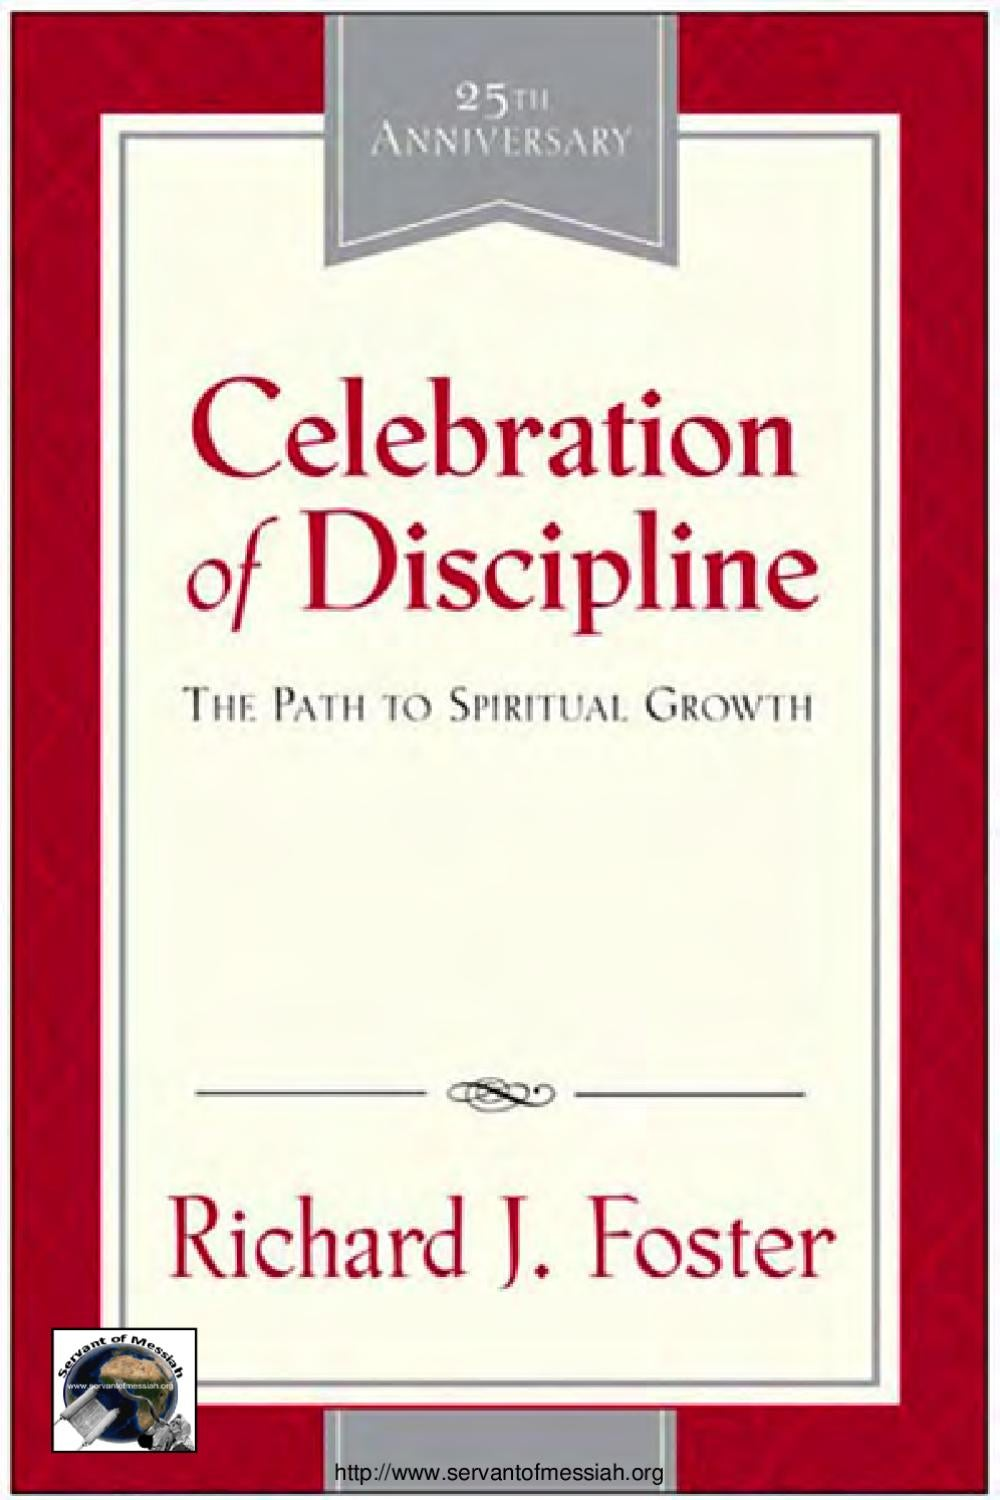 Celebration Of Discipline By Richard J Foster By Servant Of Messiah